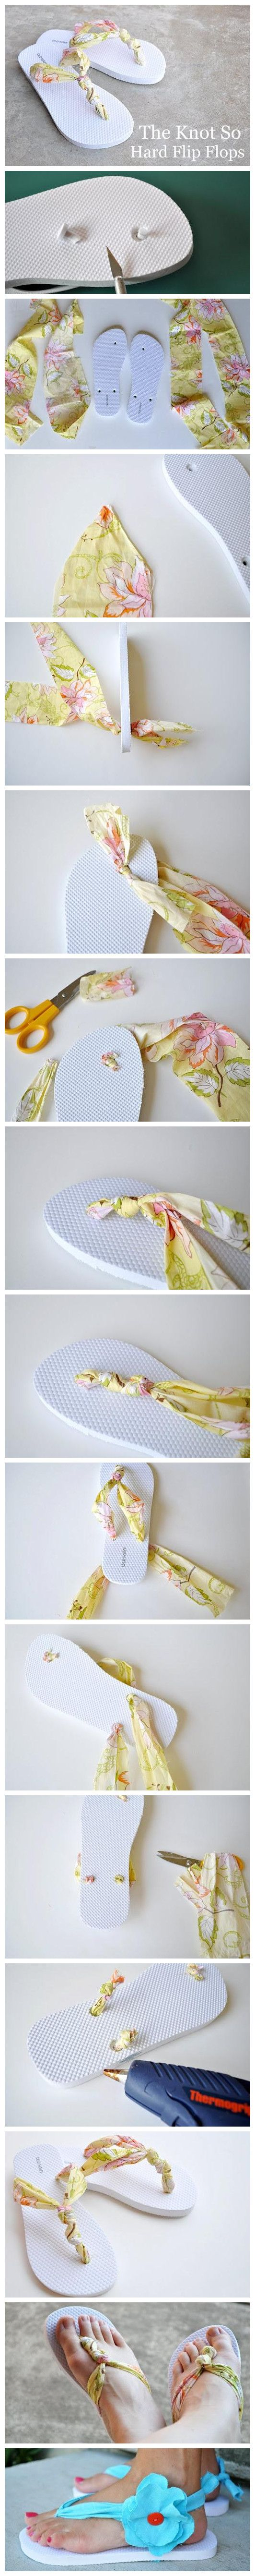 Cool idea to spruce up everyday summer flip flops.